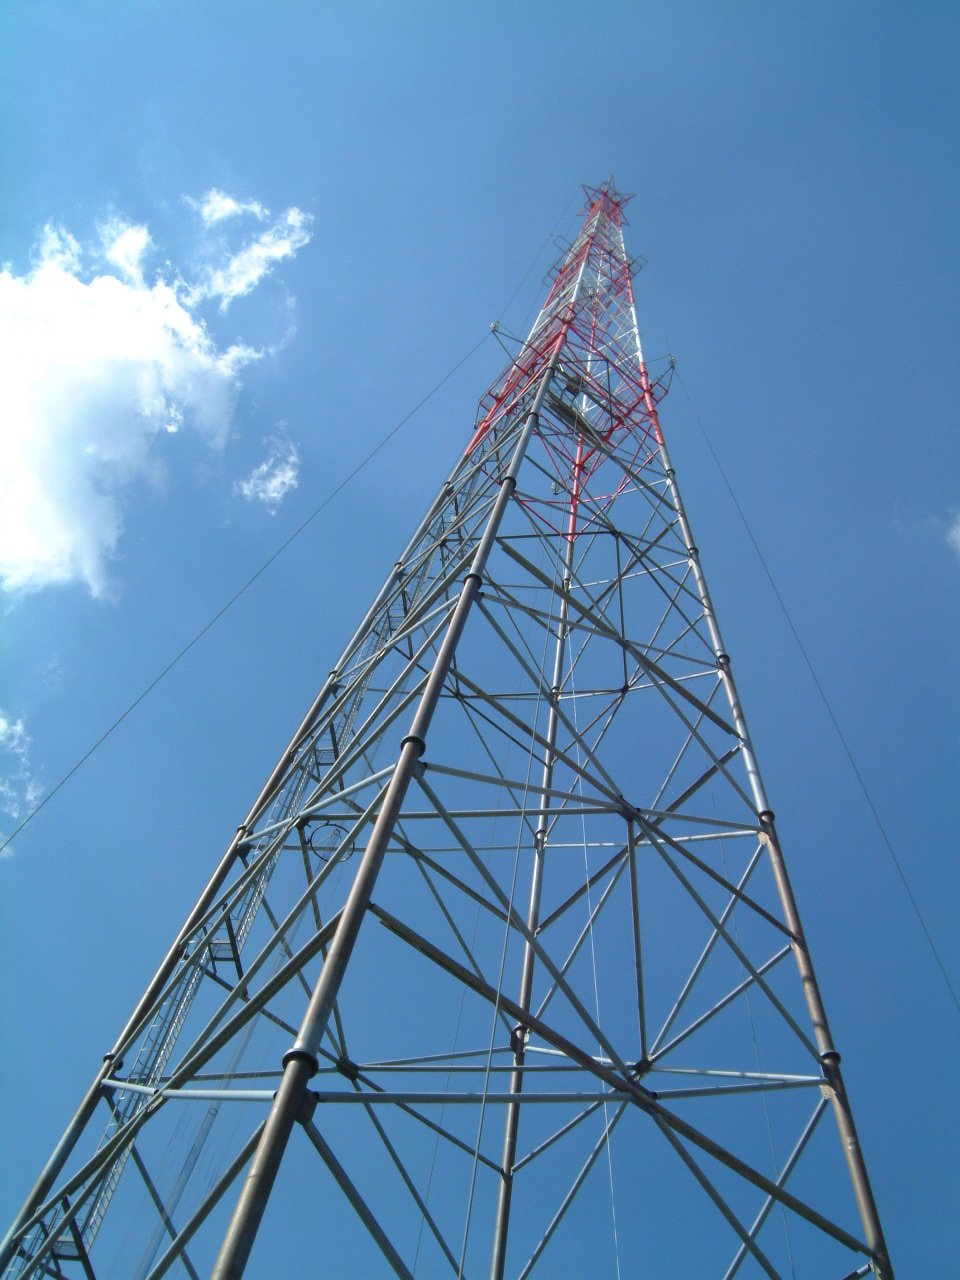 The Sottens Transmitter And Antenna Two Points Are In One Line Main Viewed From Base